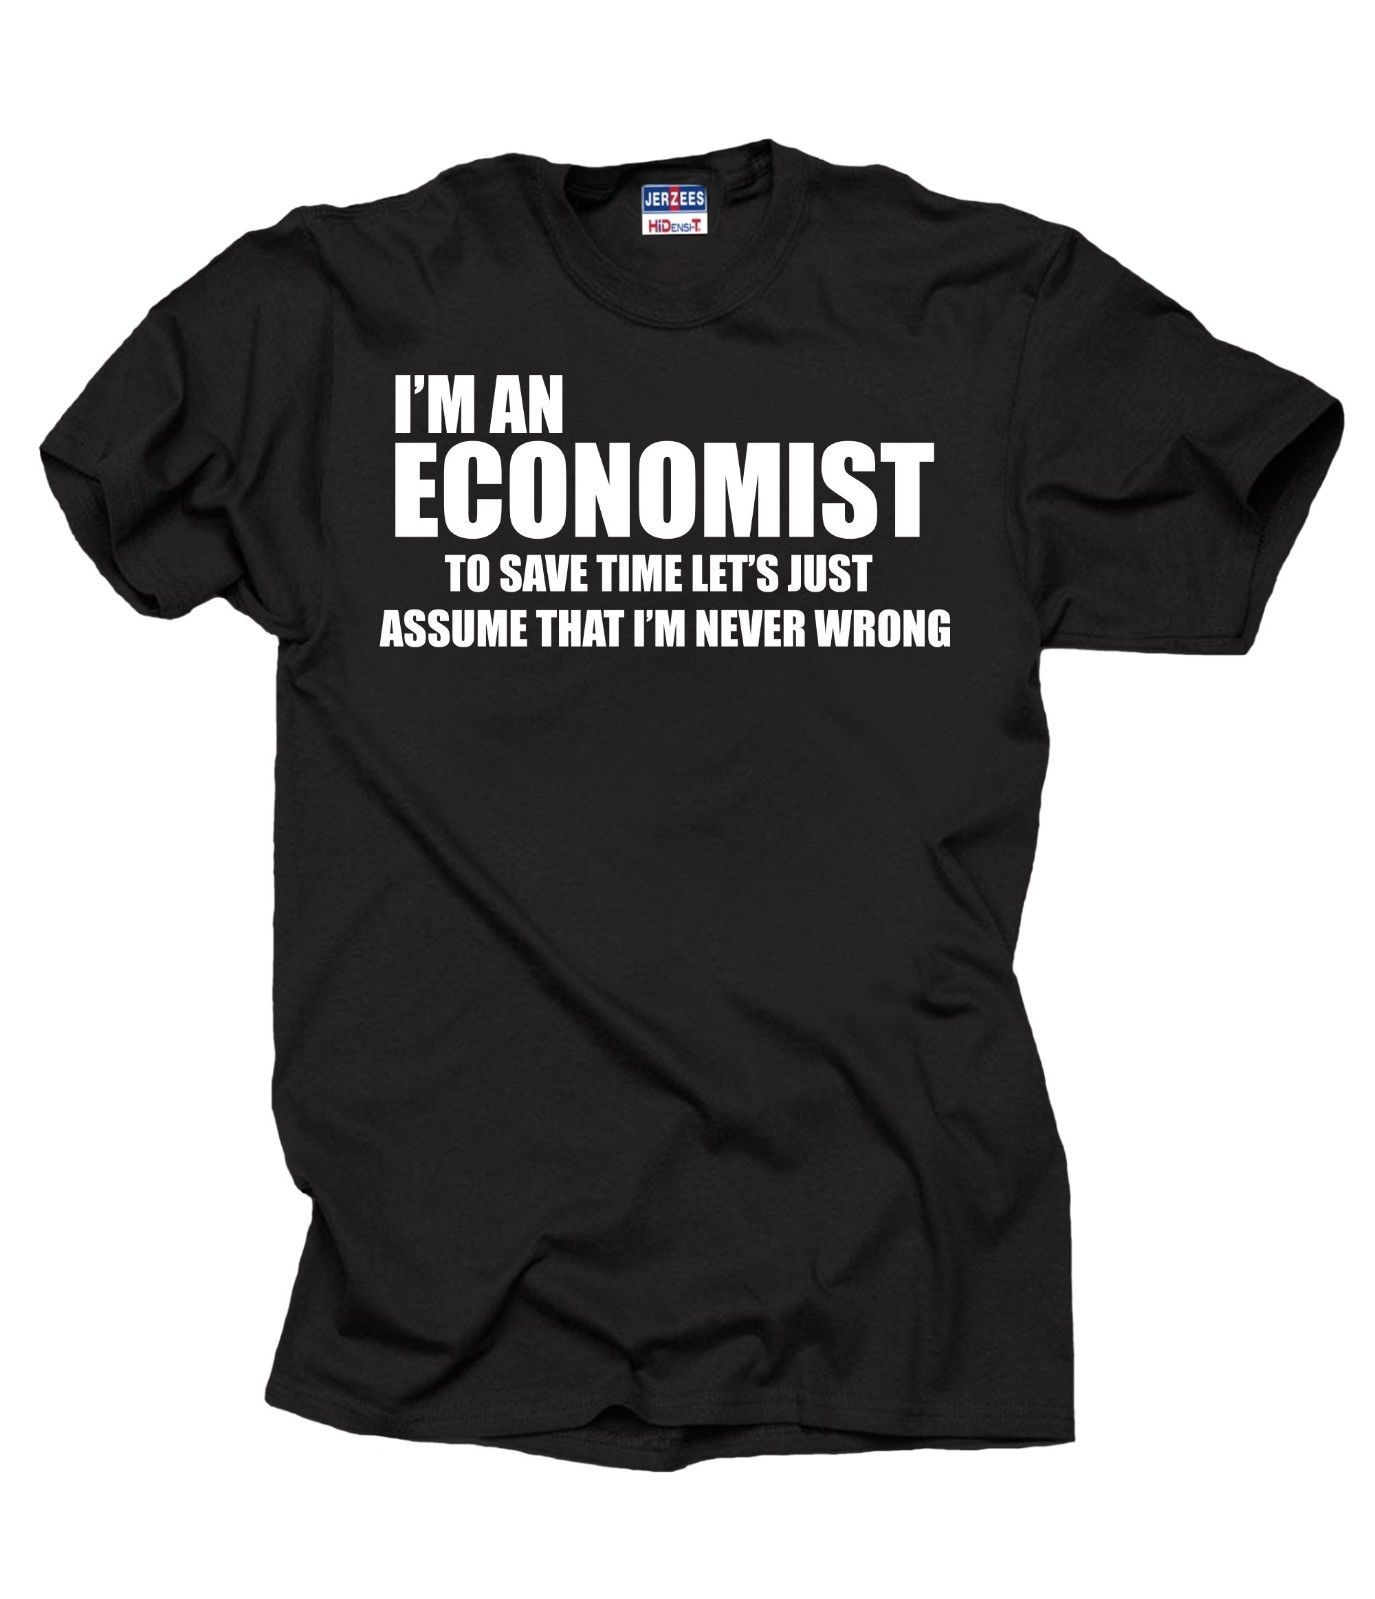 2019 Fashion Hot sale Funny Economist T-shirt MBA student Economist Economy Economics Sweater Tee shirt image